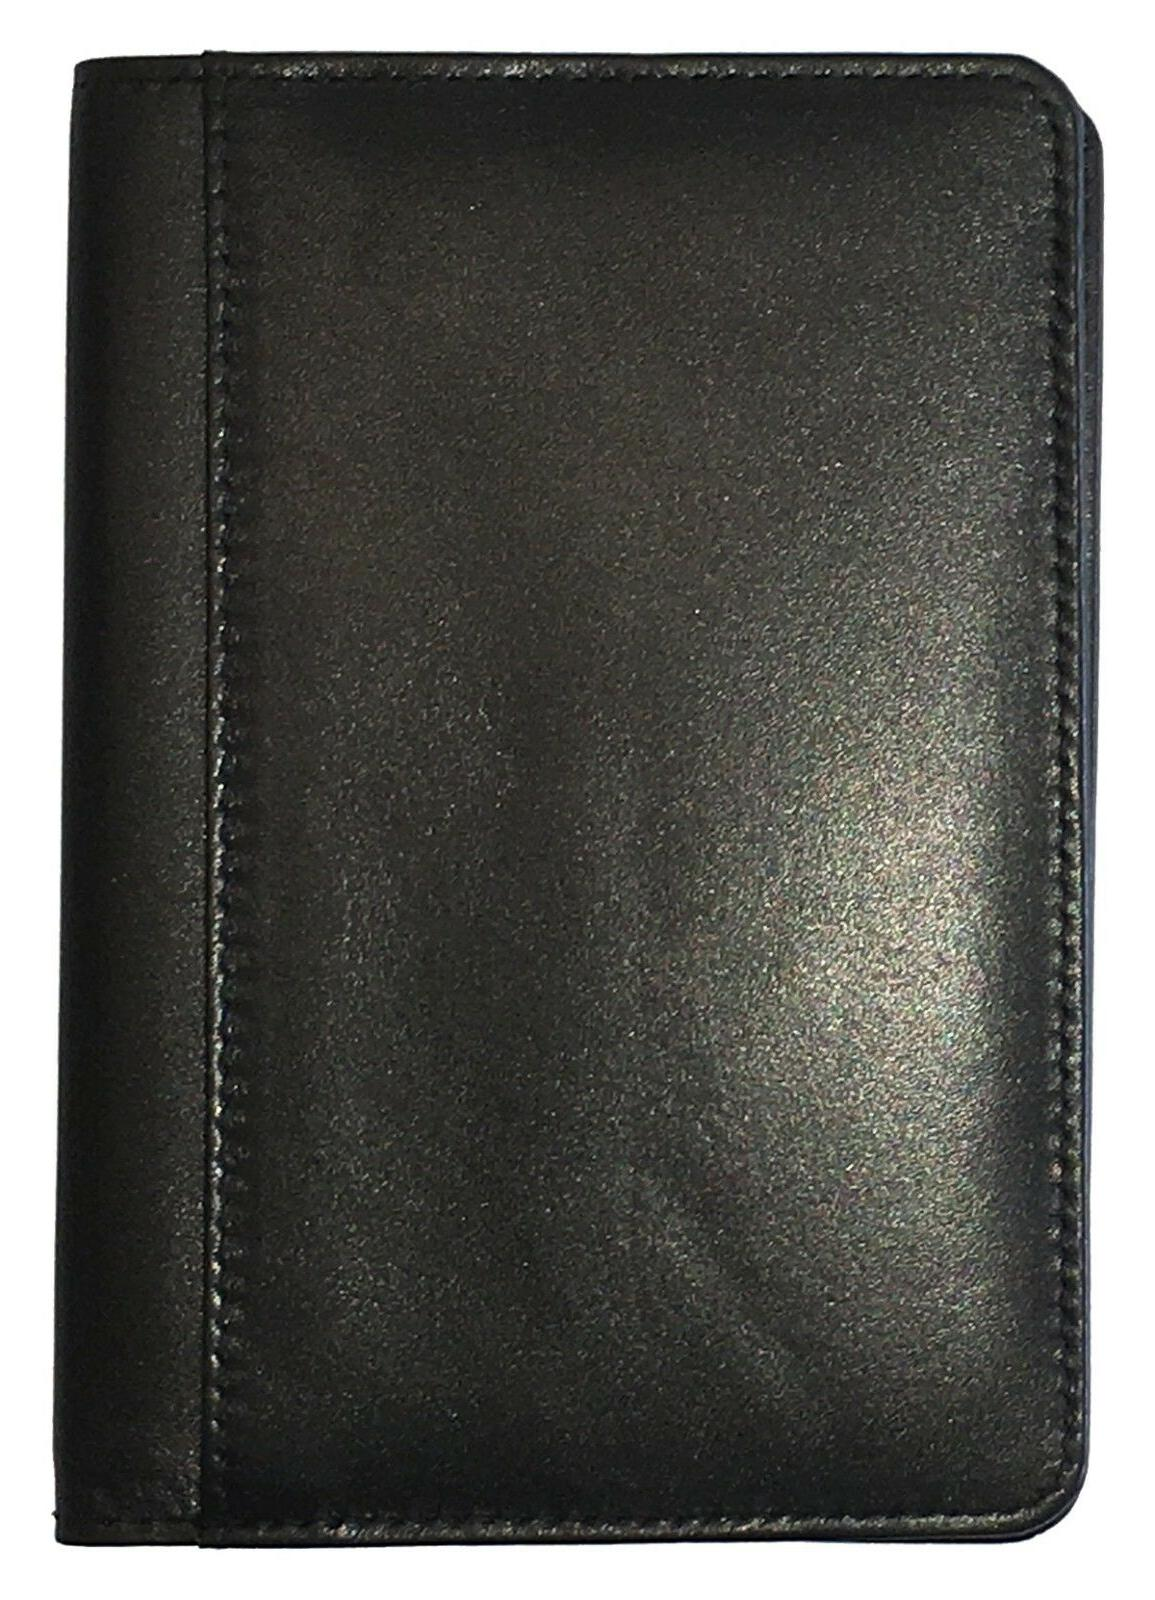 407f6cfb2c28 Personalized Monogrammed Leather RFID Passport Holder Cover and